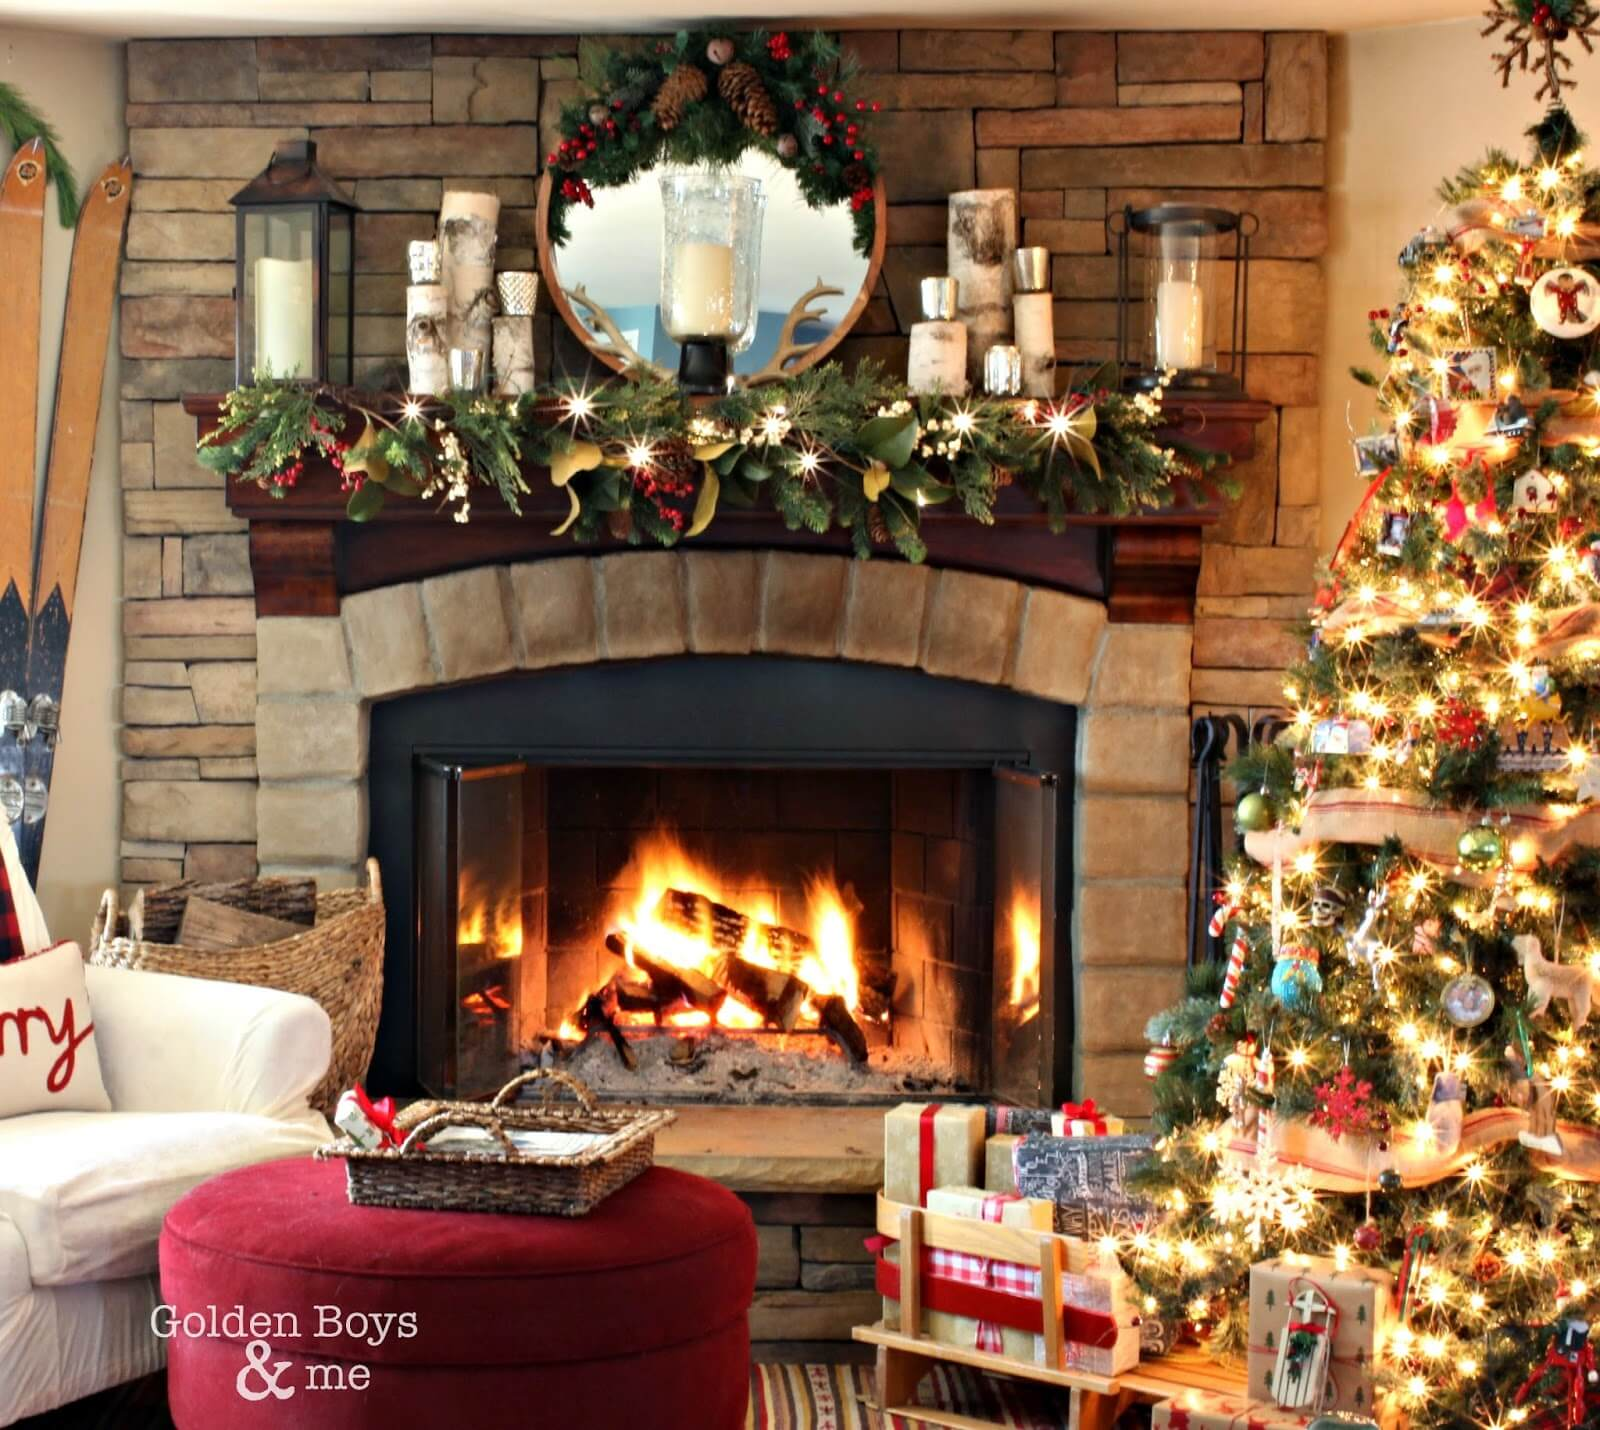 Decorate Your Christmas Mantel with Natural Birch Pillars